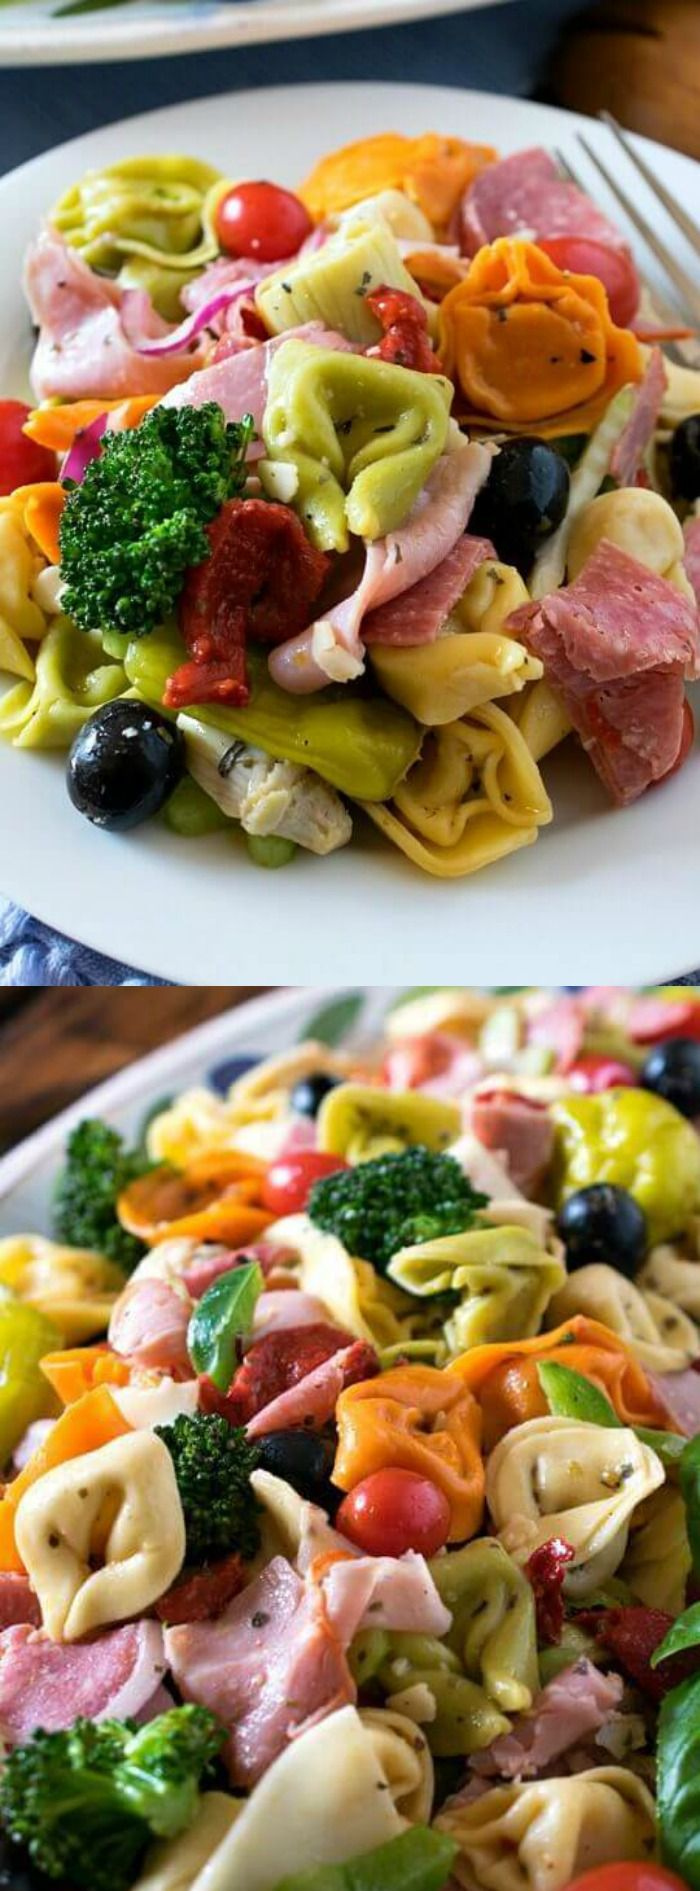 This delicious Italian Tortellini Salad recipe from A Family Feast should definitely make a regular appearance on the menu at your summer parties!  It's the perfect side dish to serve alongside any grilled foods like burgers, hot dogs, steak or chicken… and it's EASY to make too!